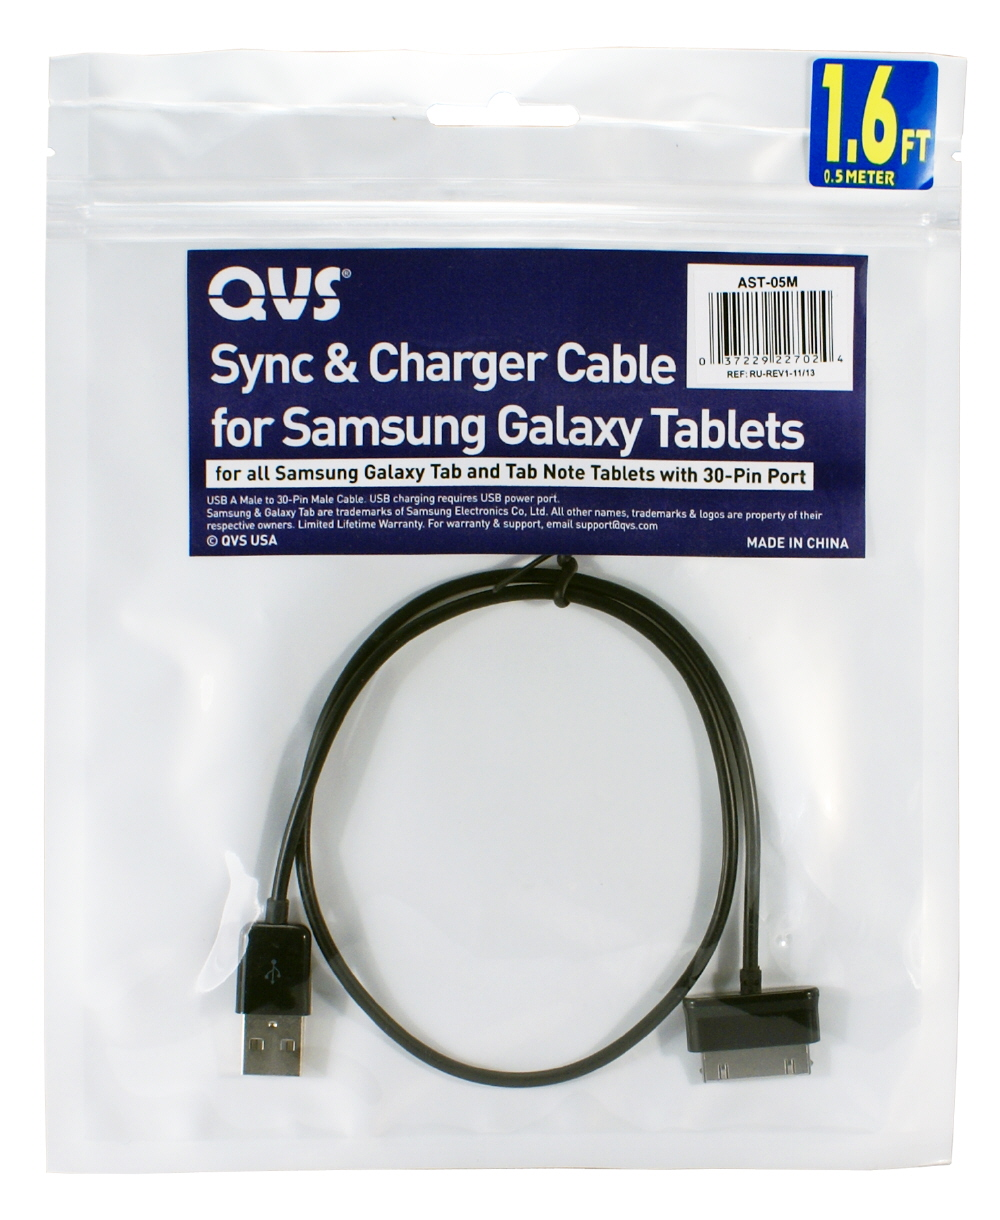 5-Meter USB Sync & 2.1Amp Charger Cable for Samsung Galaxy Tab/Note Tablet - AST-5M